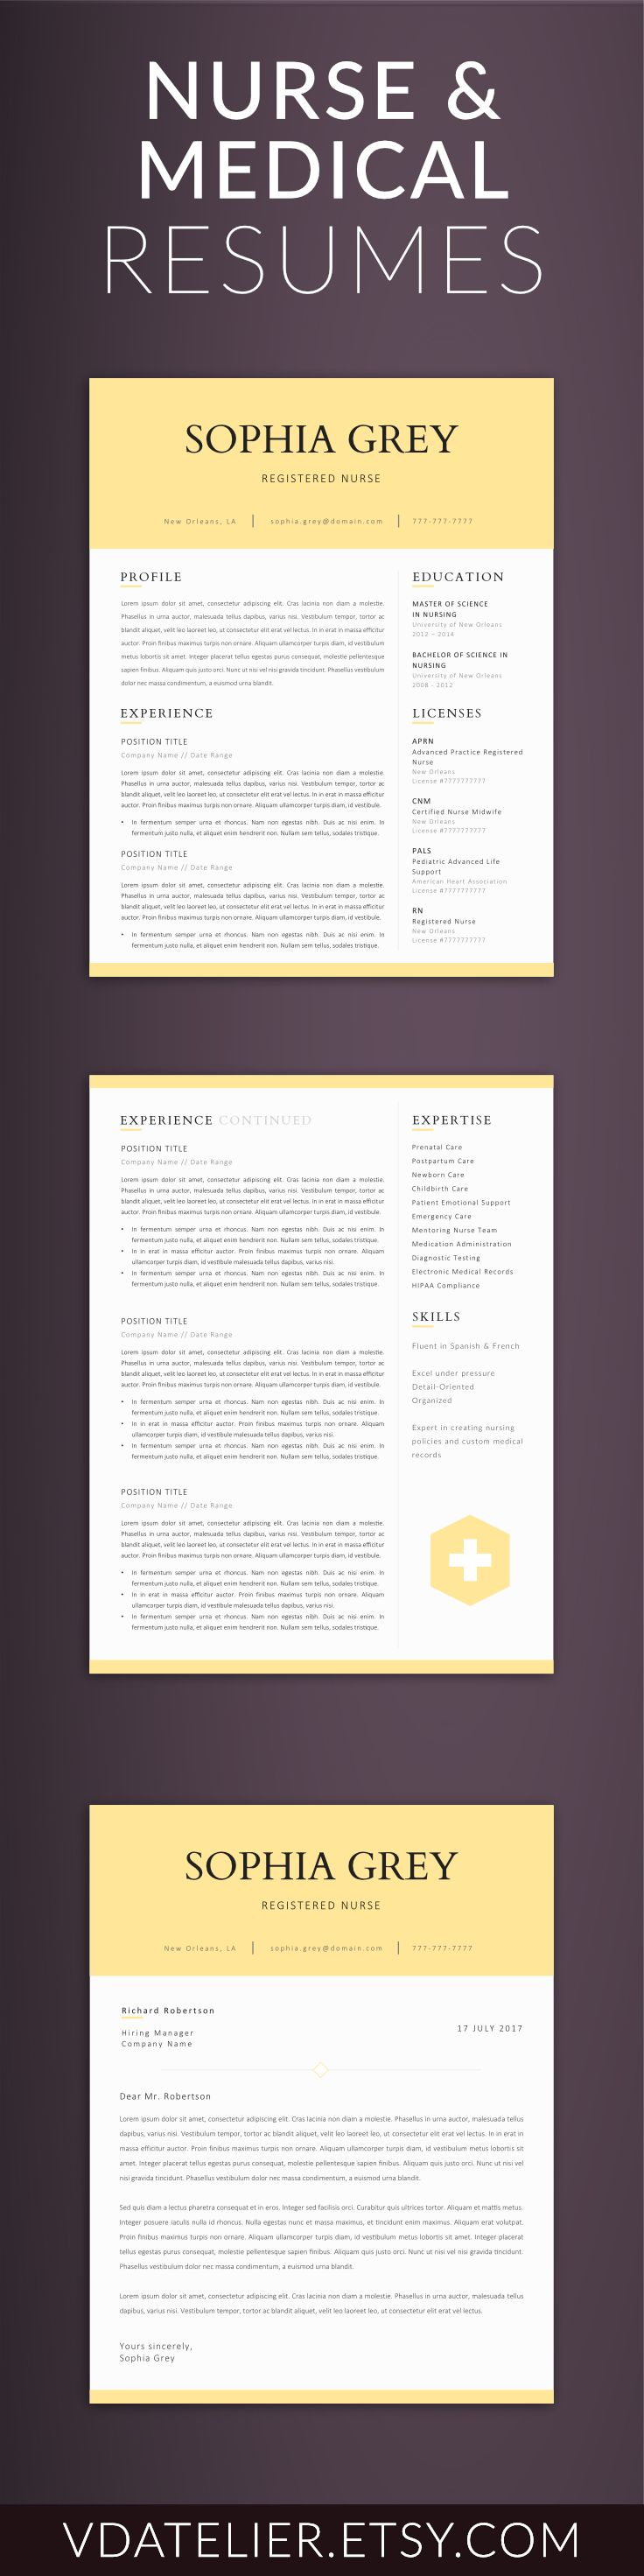 Doctor Resume Template For Word, Nurse Resume Template | Nurse CV Template  | RN Resume